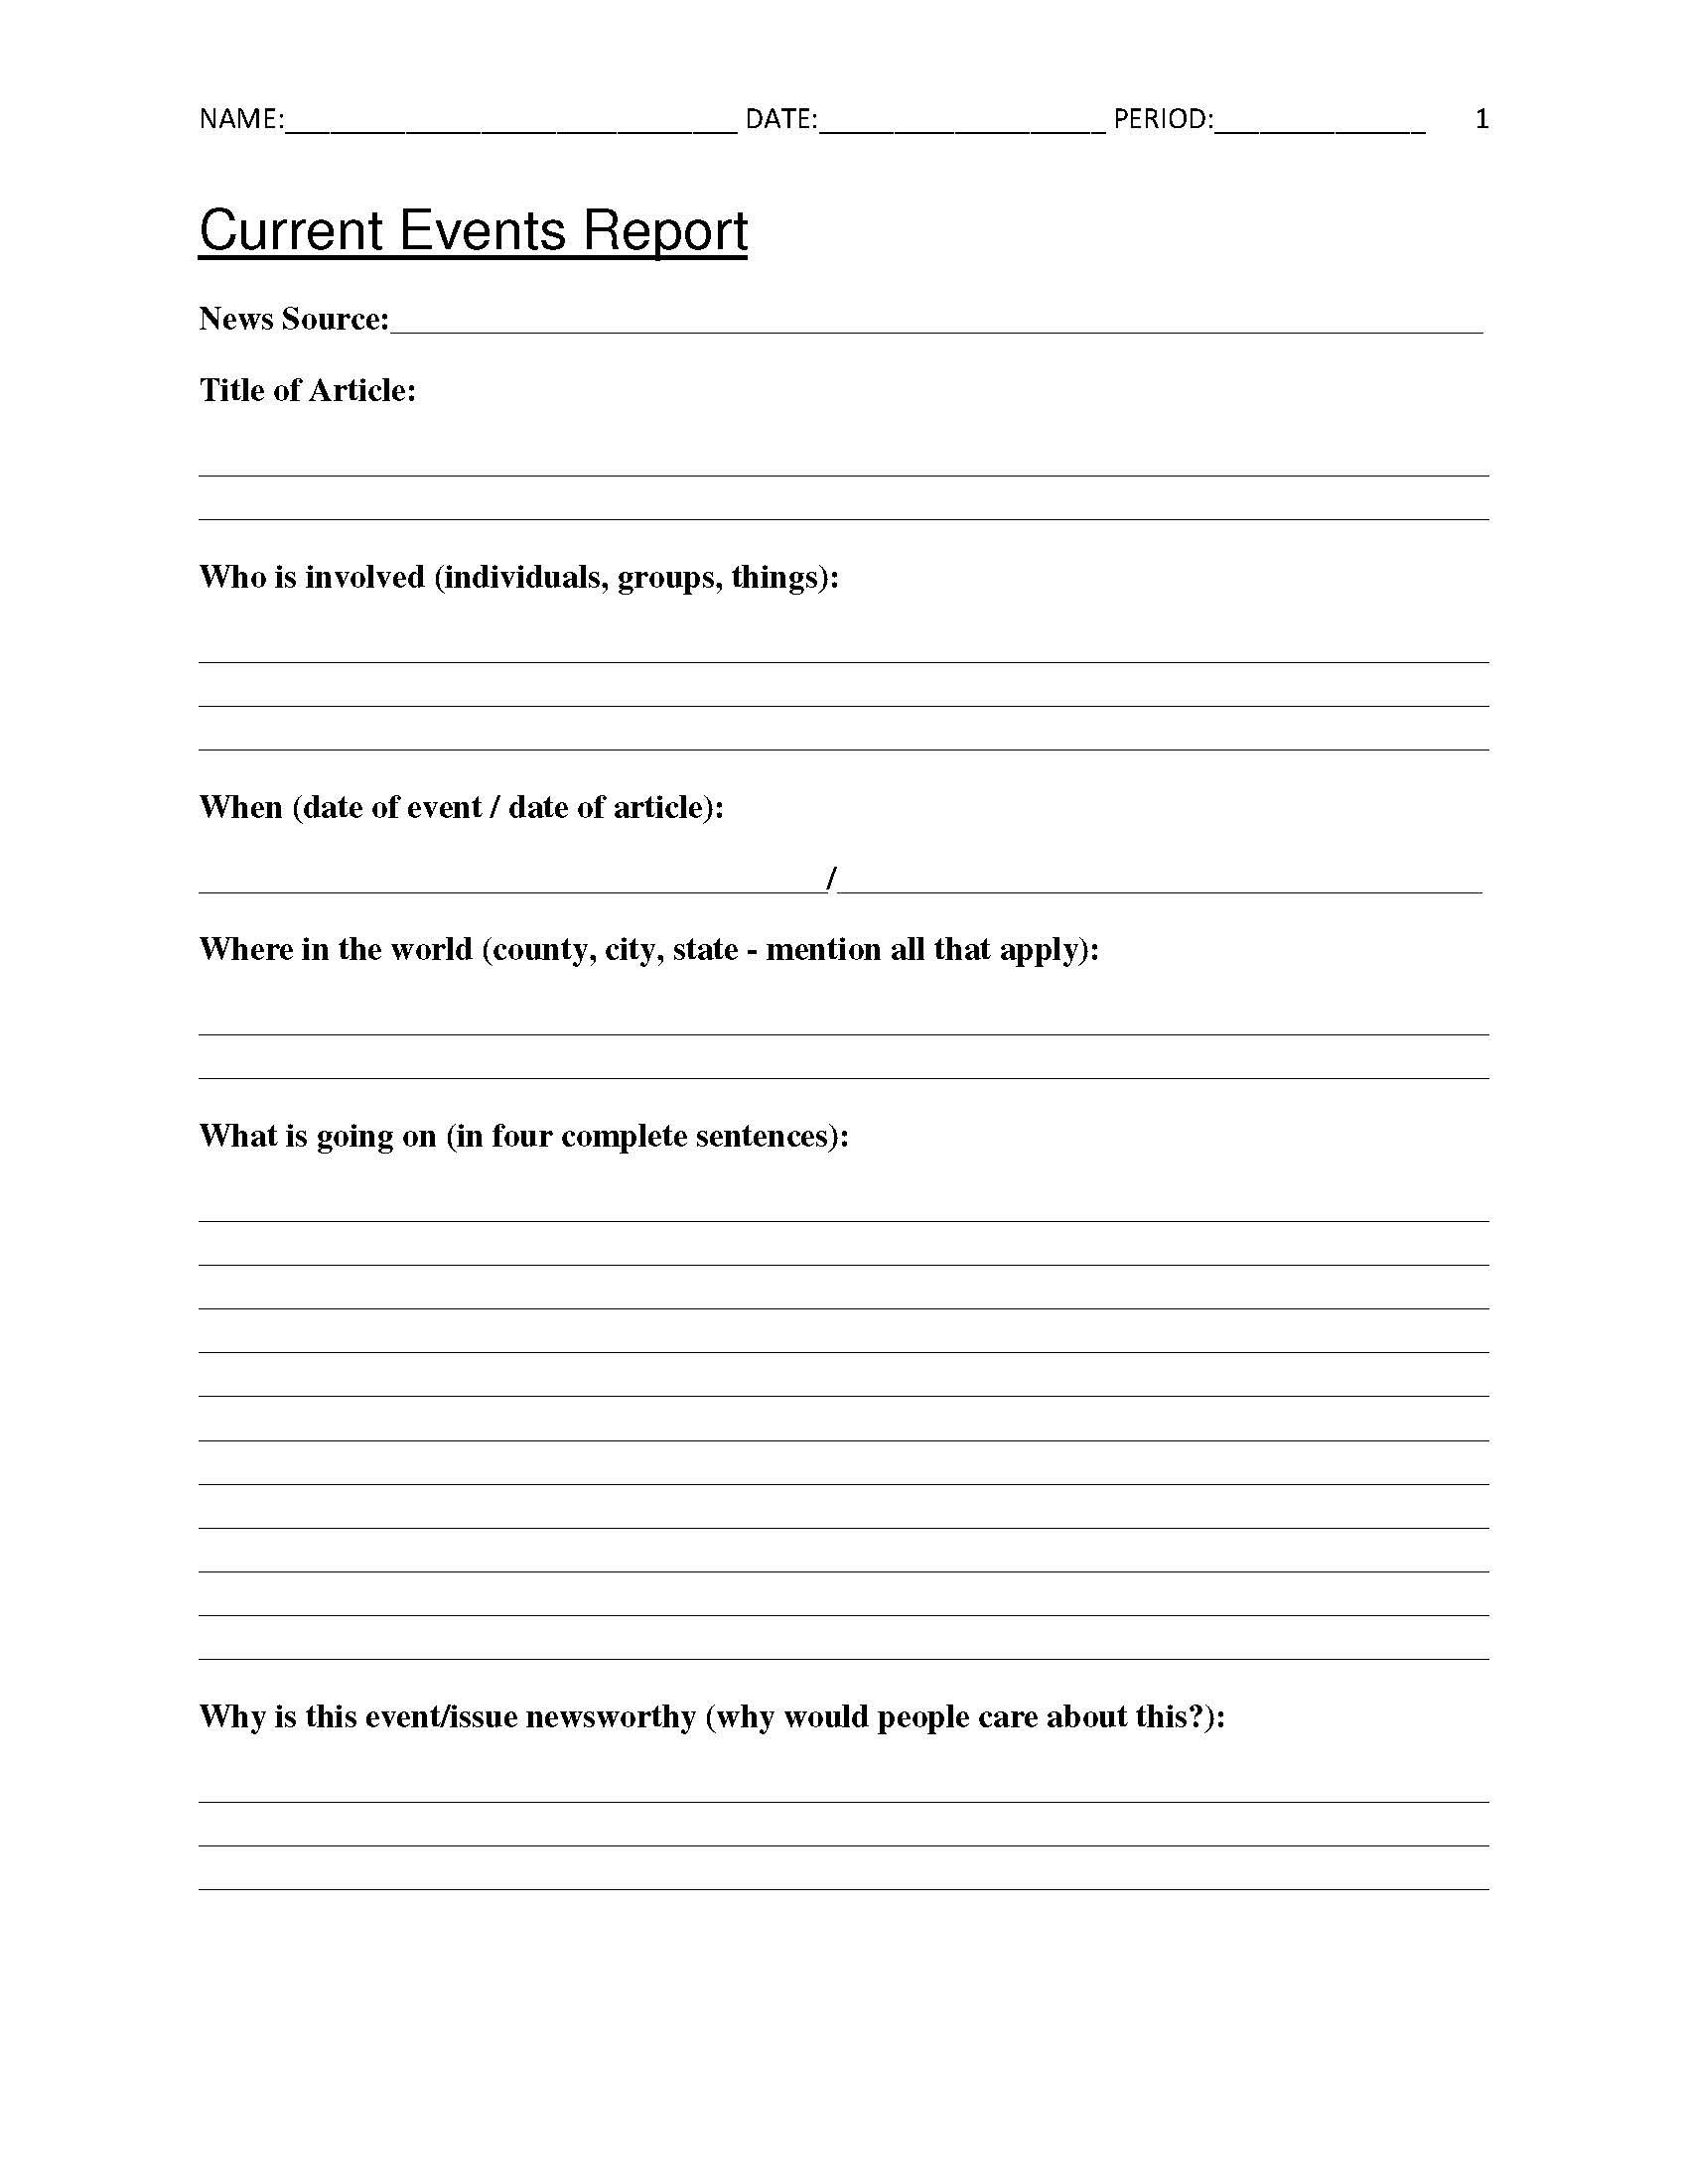 Free Current Events Report Worksheet for Classroom ...